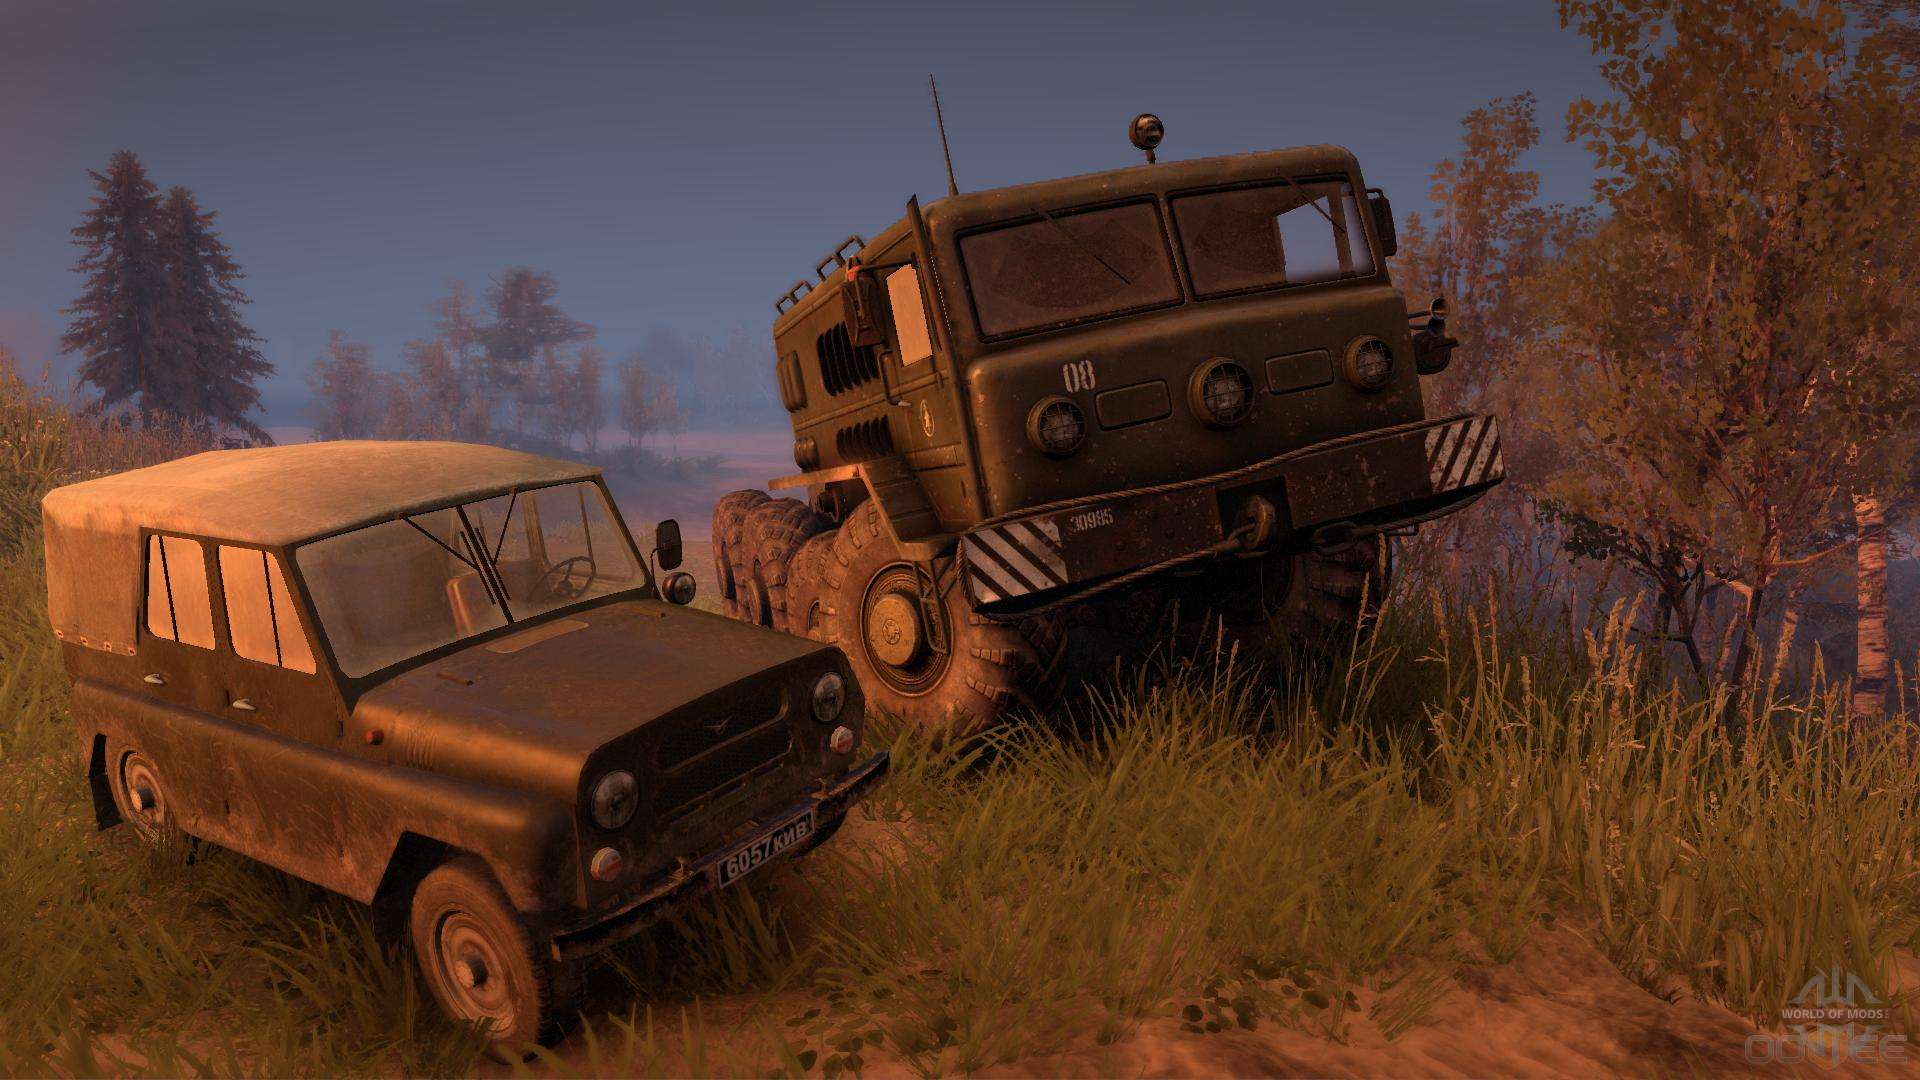 Spintires free download highly compressed full version